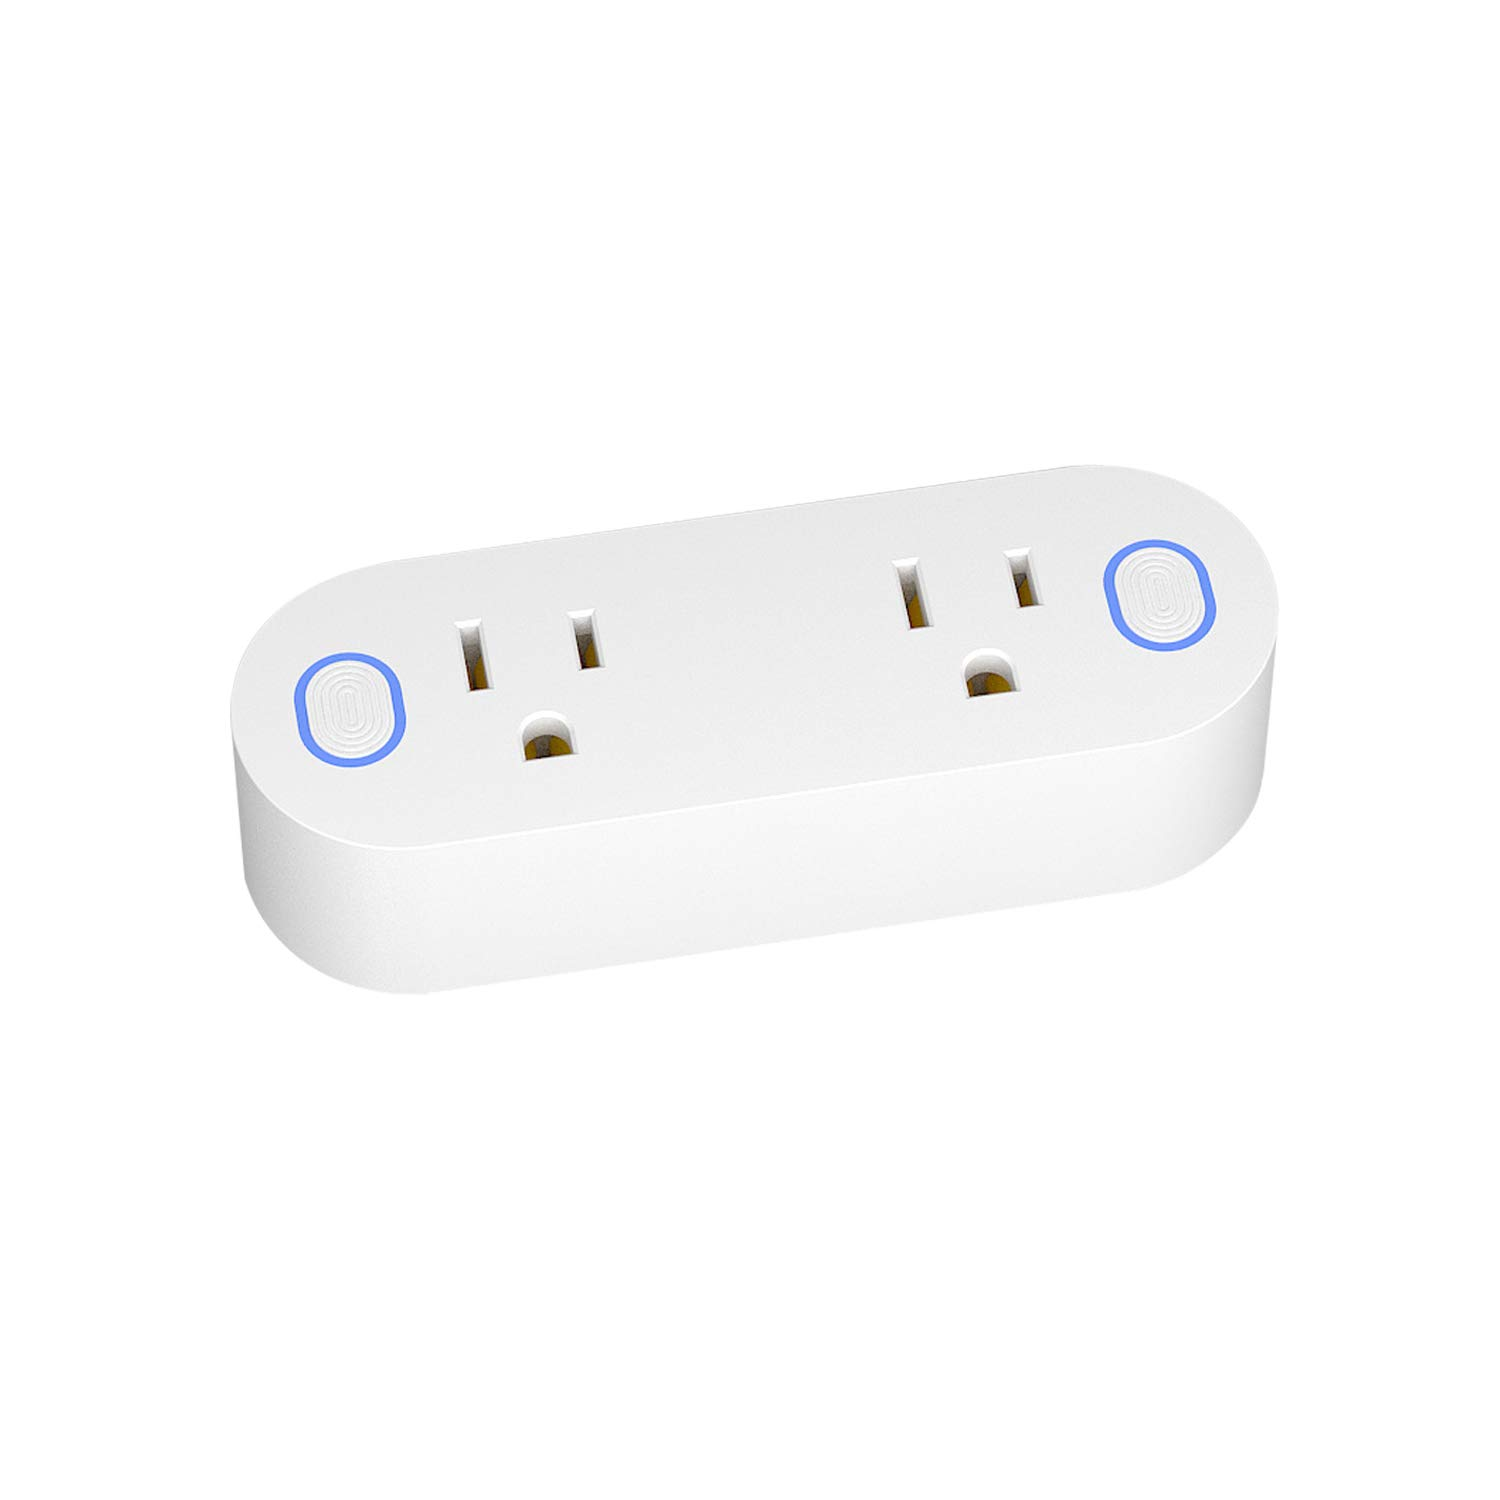 Mini Smart Wi-Fi Dual Outlet Plug with Energy Monitoring Function - Wireless Remote Controlled, No Hub Required, Compatible with Alexa Echo, Google Home Assistant and IFTTT, 16A 110-240V